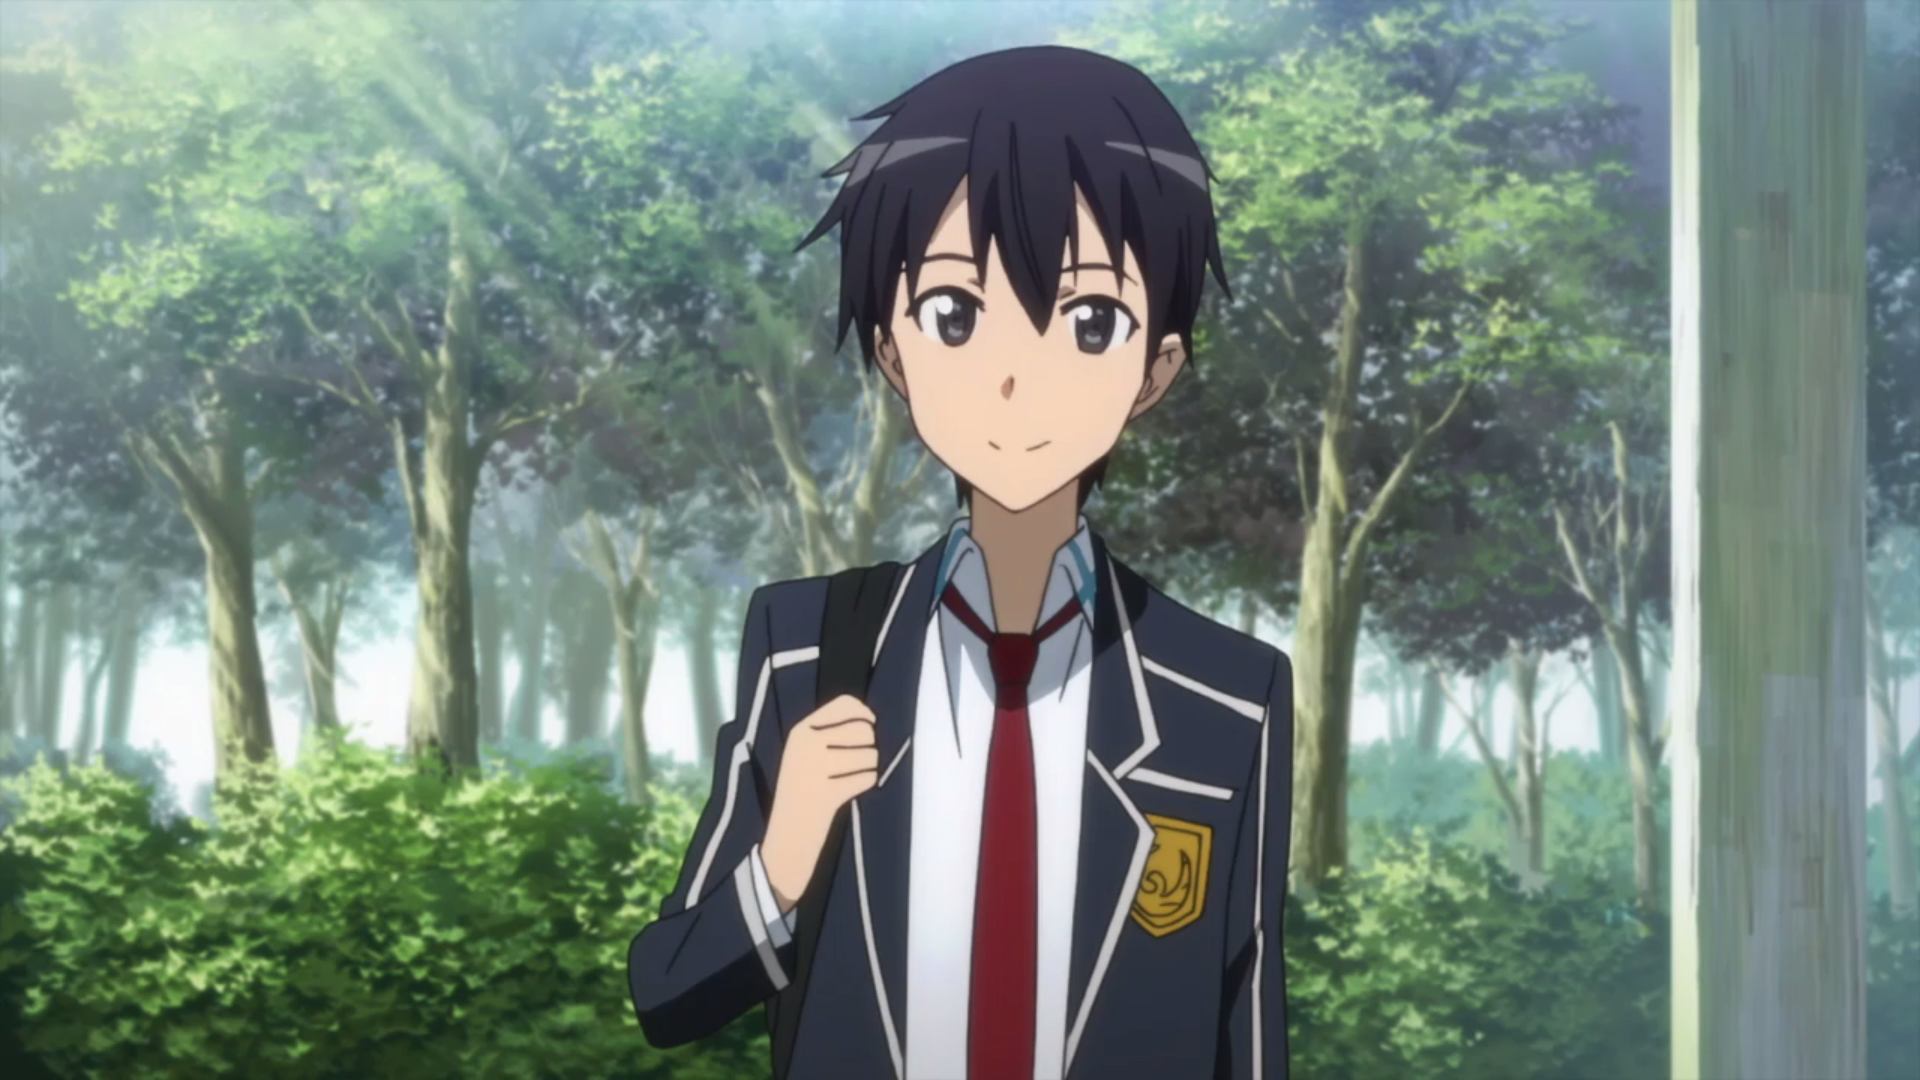 Kirigaya Kazuto | Sword Art Online Wiki | FANDOM powered by Wikia